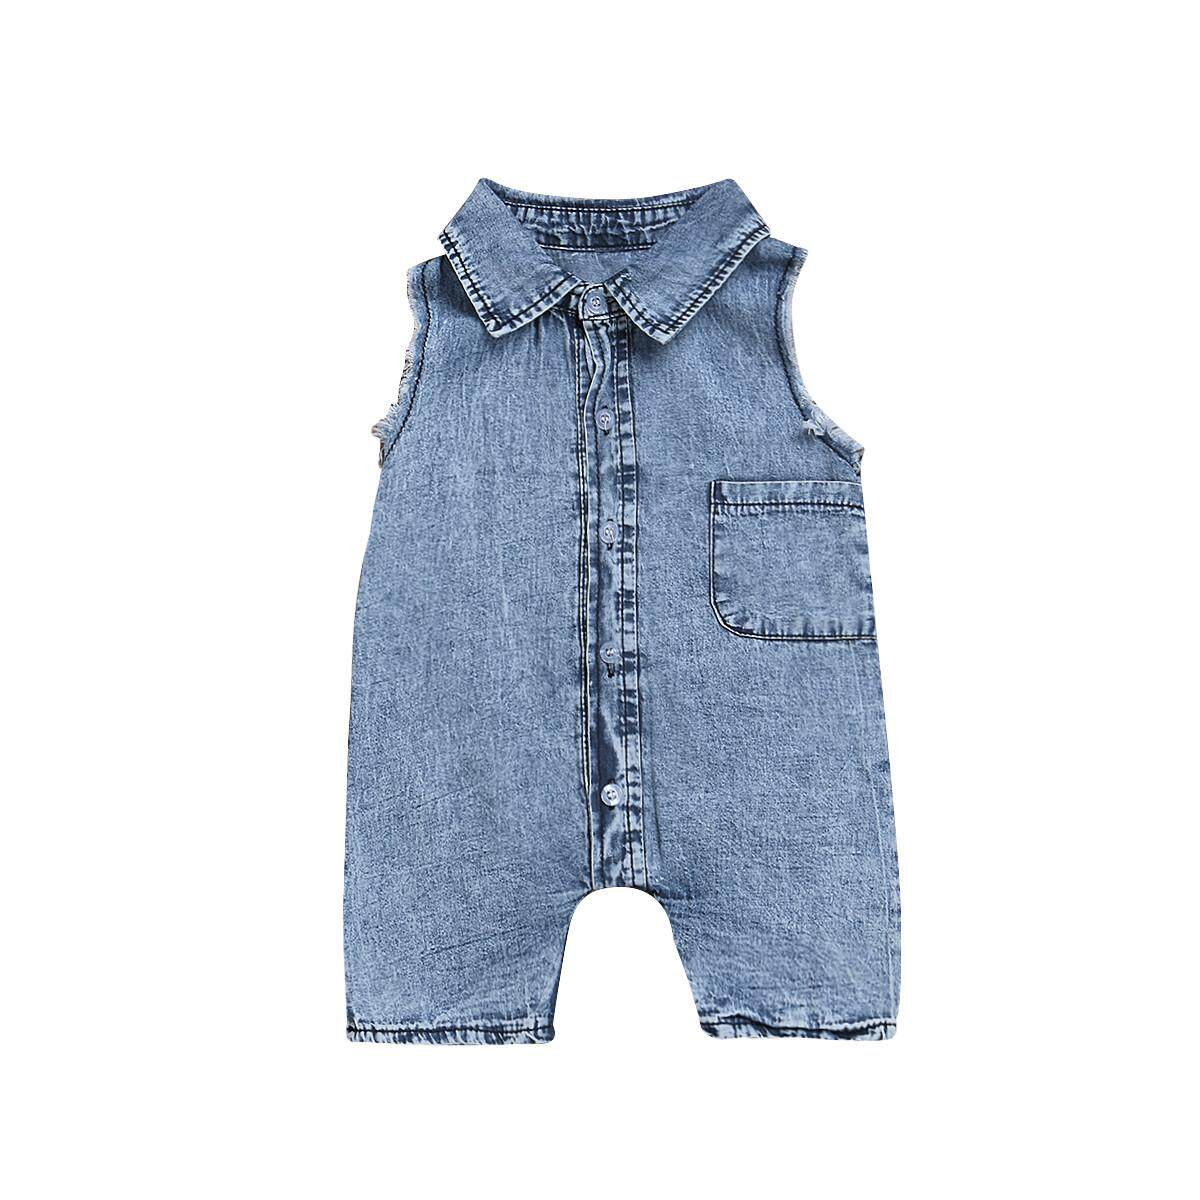 820016322c60f Rayeshop Newborn Baby Boys Sleeveless Jeans Romper Jumpsuit Children Clothes